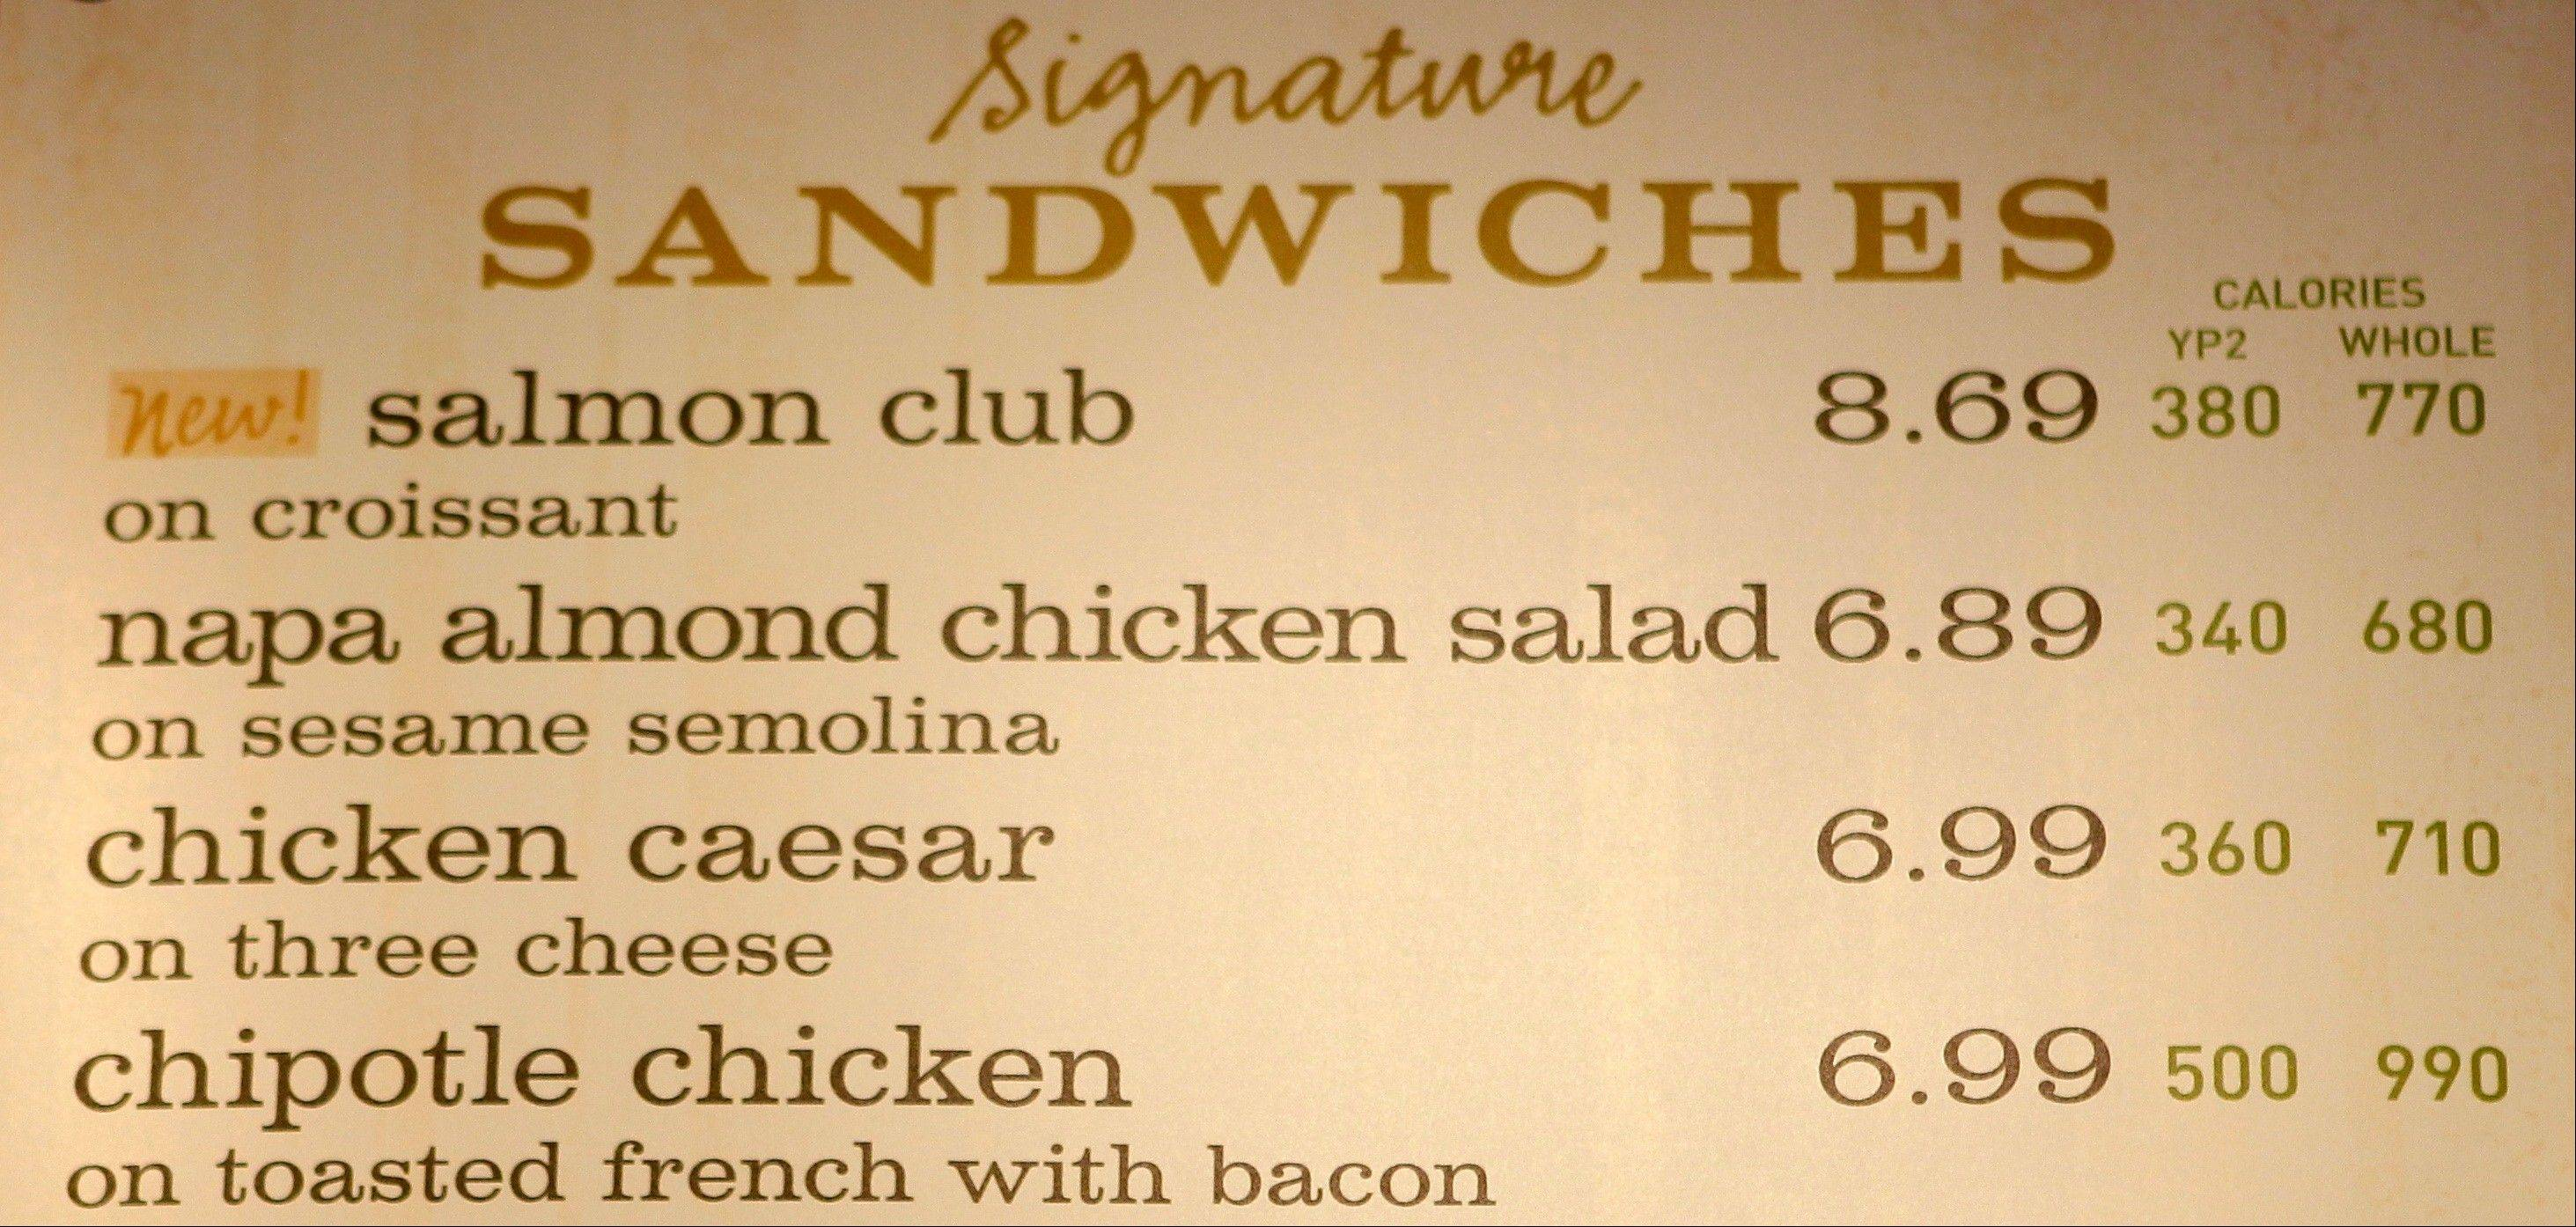 The sandwich board at the Panera store in Brookline, Mass shows the calorie count for each item.